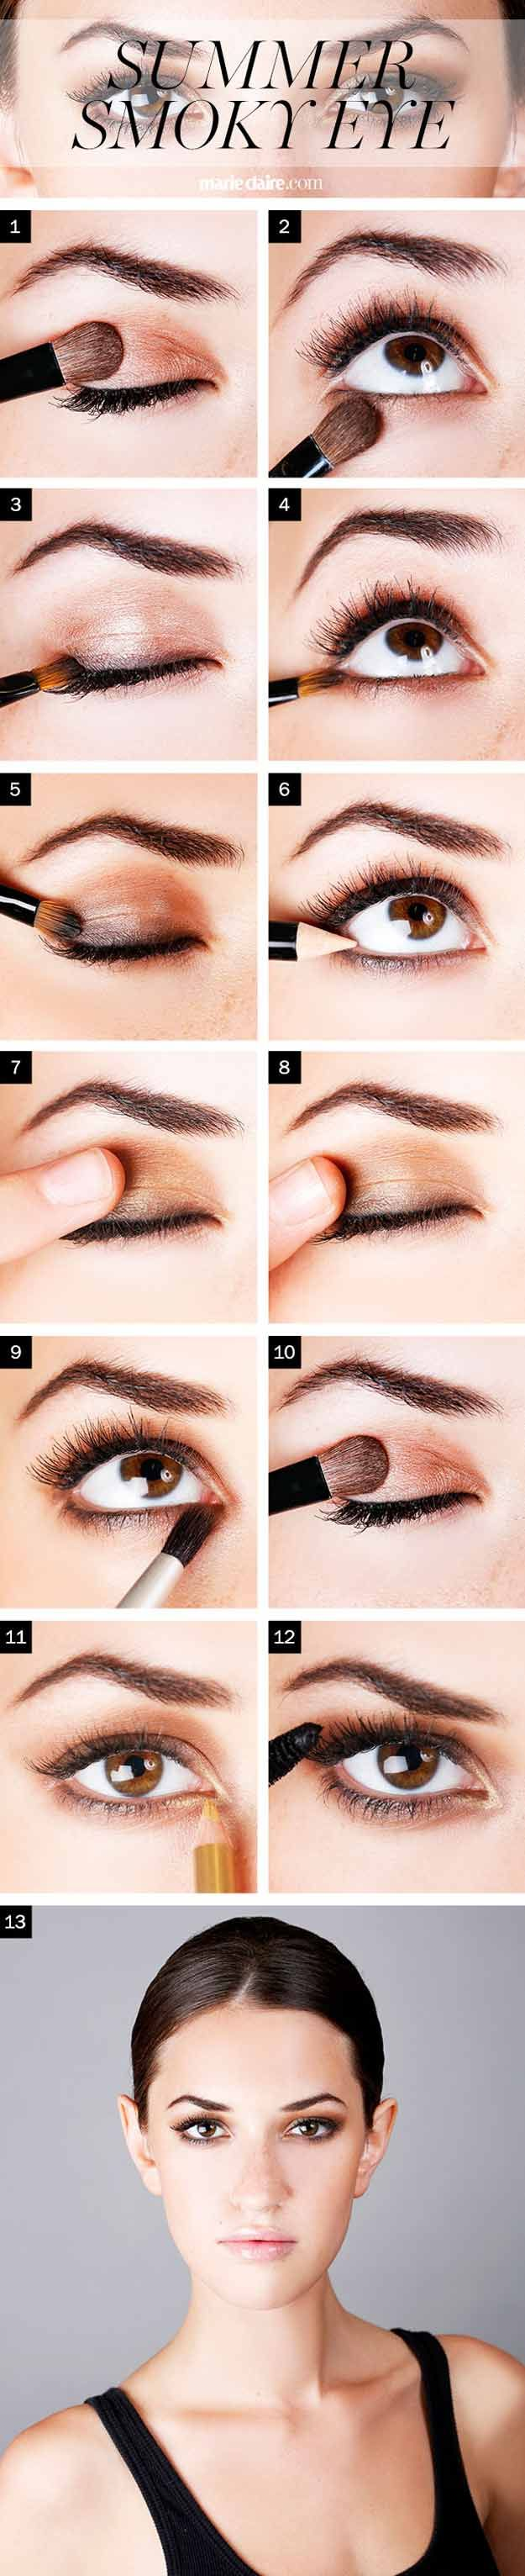 Tips to Help You Look Tan - Makeup How-To: Bronze Smoky Eye - Easy DIY Tips and Tricks on How To Apply Self Tanner and How To Make Sprays, Products and Lotions - Learn What is the Best Self Tanner for All Different Faces - Get a Natural Looking Sun Kissed Style for Summer - https://thegoddess.com/sunless-tanning-tips